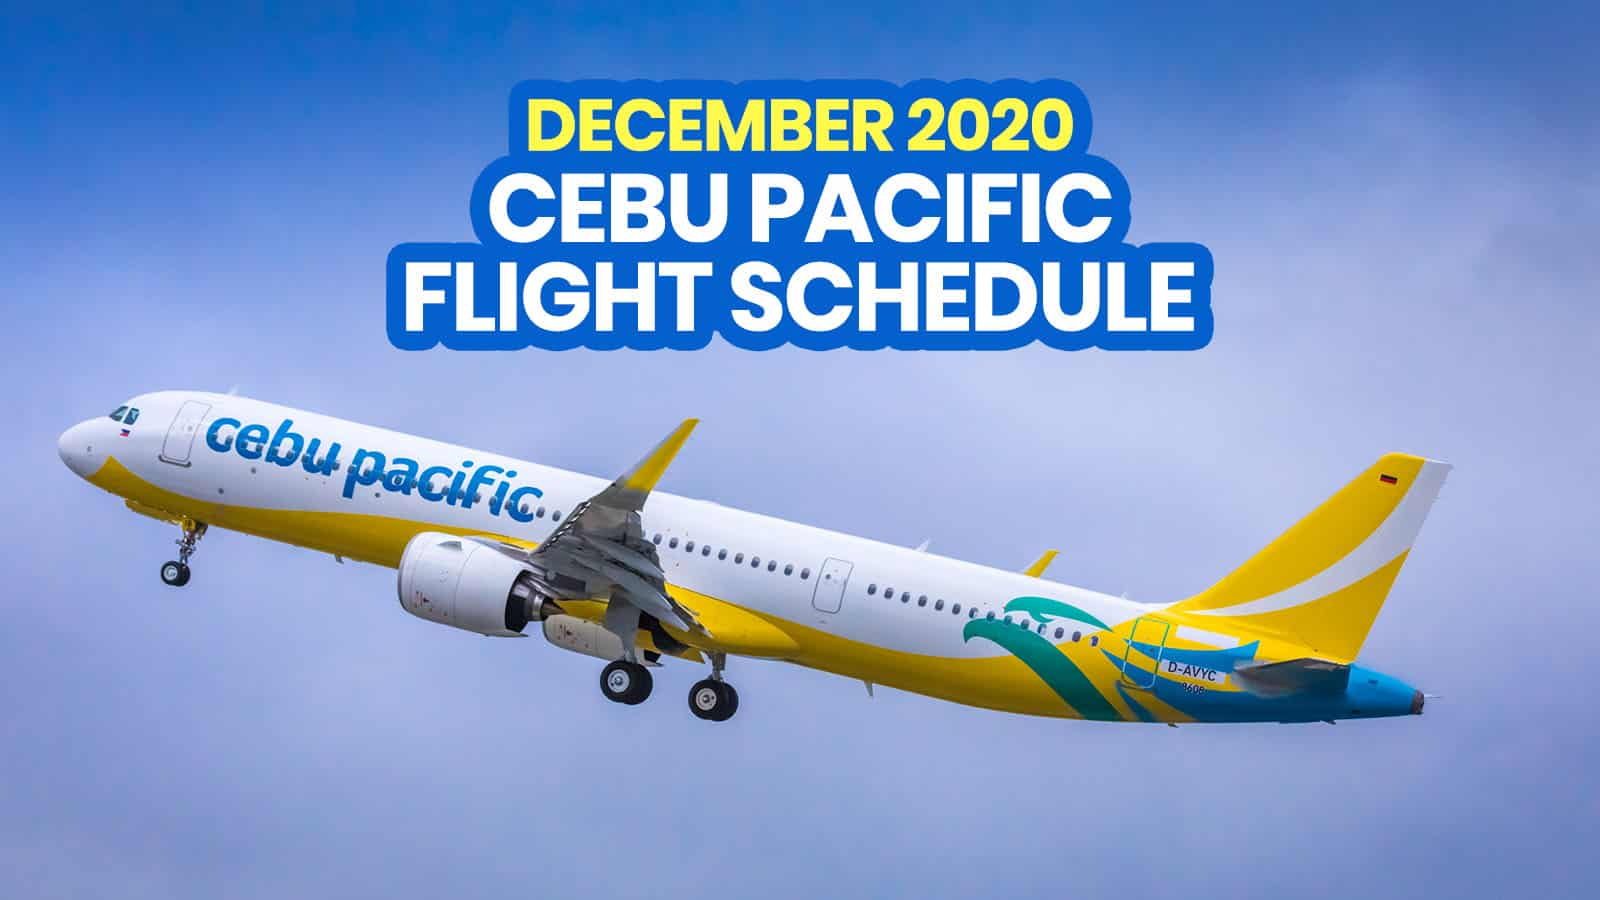 CEBU PACIFIC SCHEDULE: List of Operational Flights for DECEMBER 2020